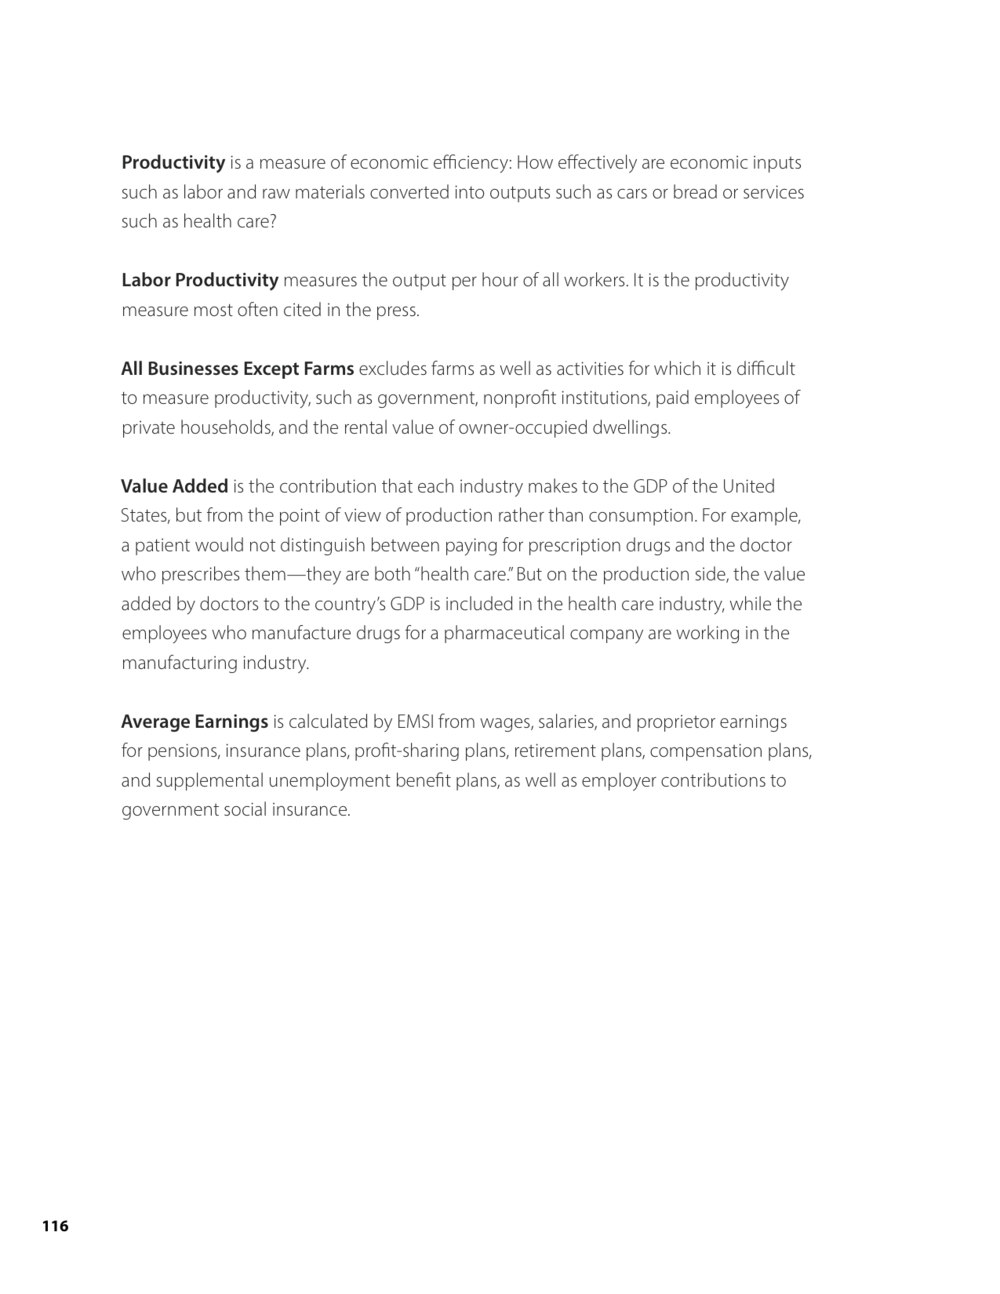 IncomeGuide_2013_Jan17_RGB_page 116_116.png